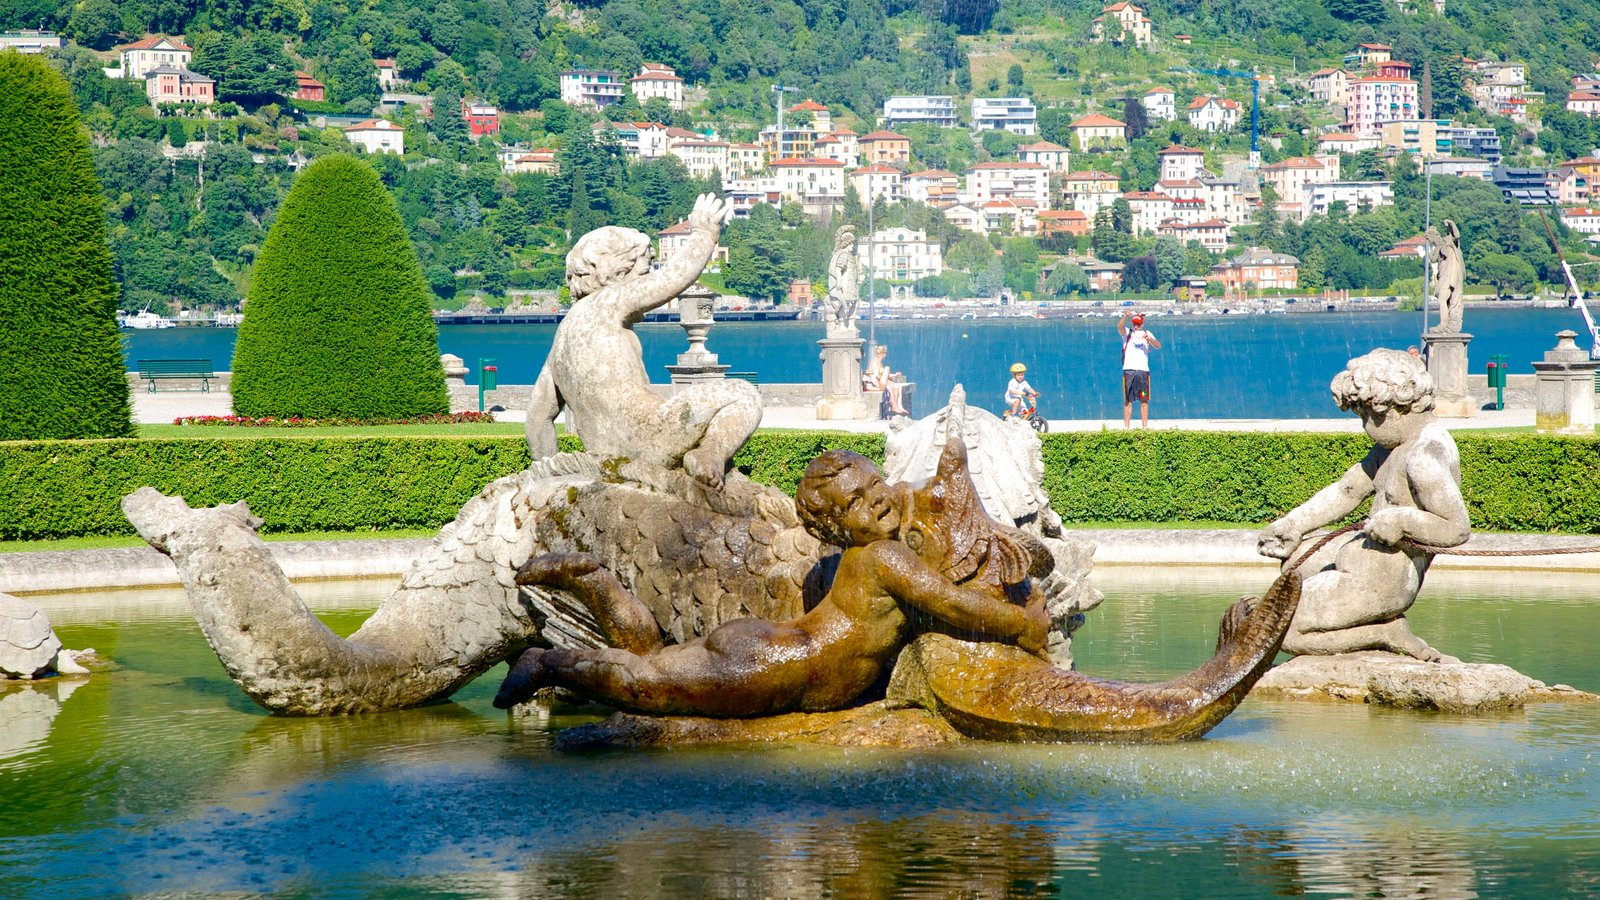 Villa Olmo featuring a statue or sculpture, a fountain and a park